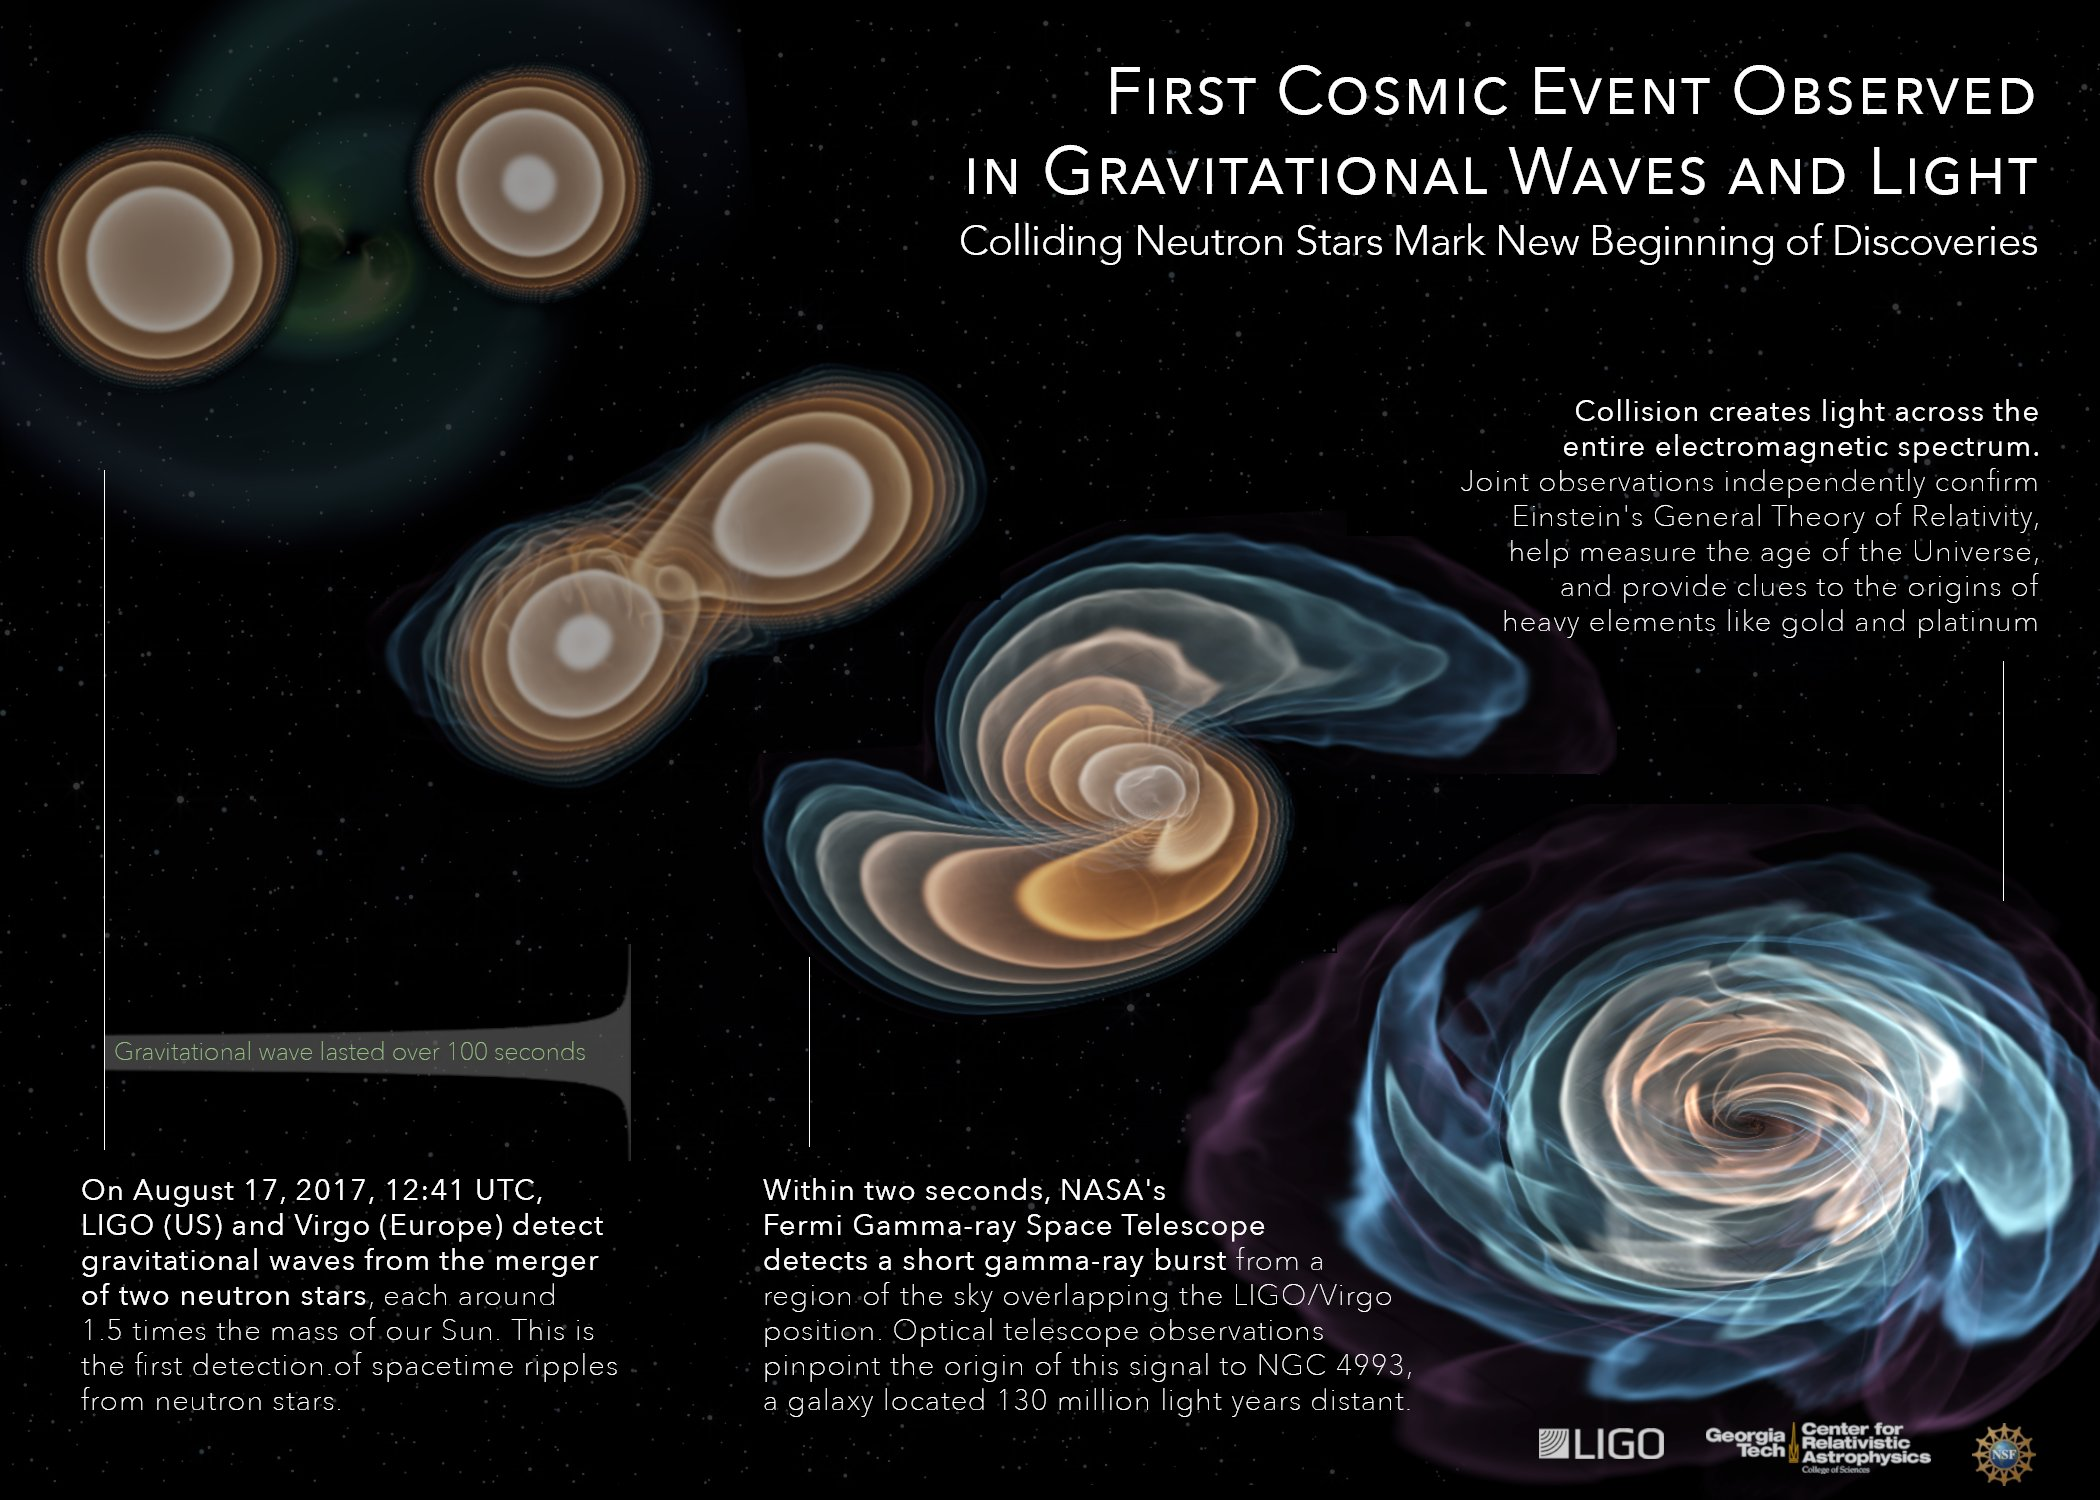 An infographic showing the sequence of events associated with GW170817/GRB170817A. Credit: C. Evans/K. Jani/Georgia Tech